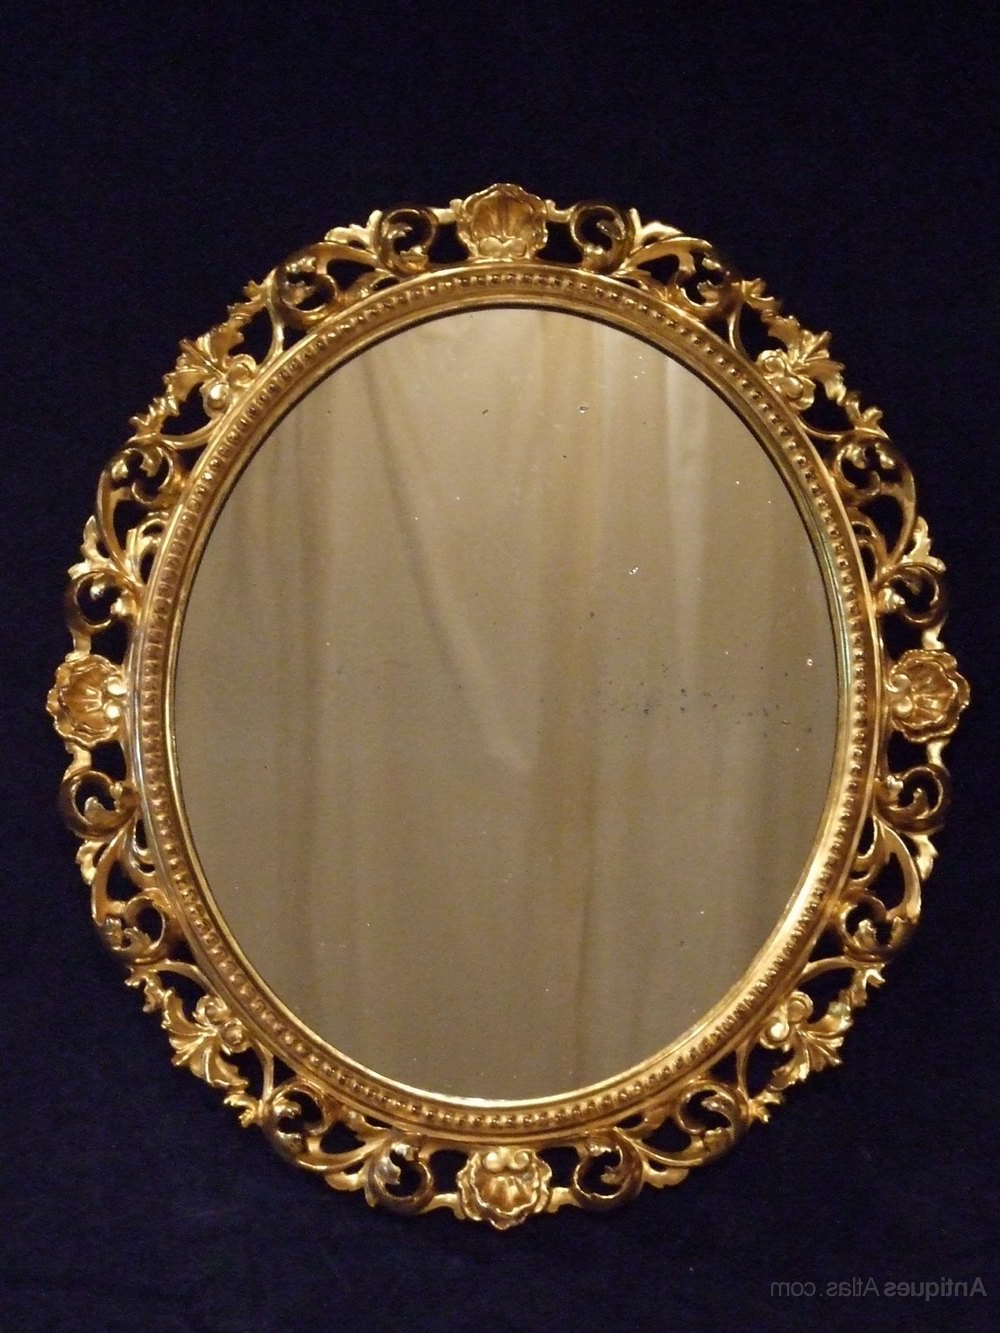 Preferred Antique Oval Florentine Gilt Oval Wall Mirror 1870 Within Antique Oval Wall Mirrors (View 15 of 20)